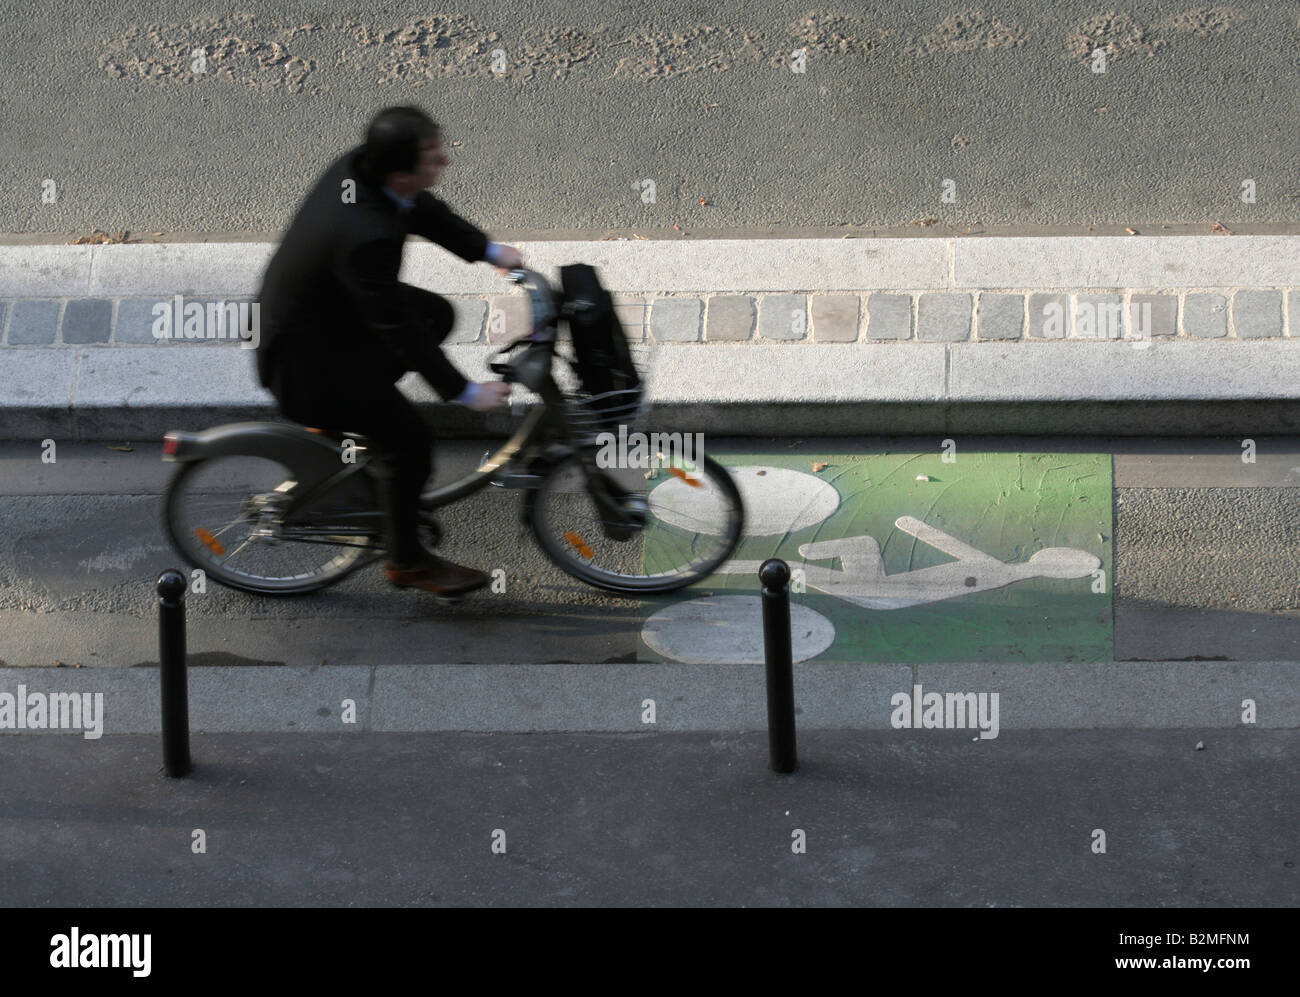 cyclist-in-cycle-lane-slow-shutter-speed